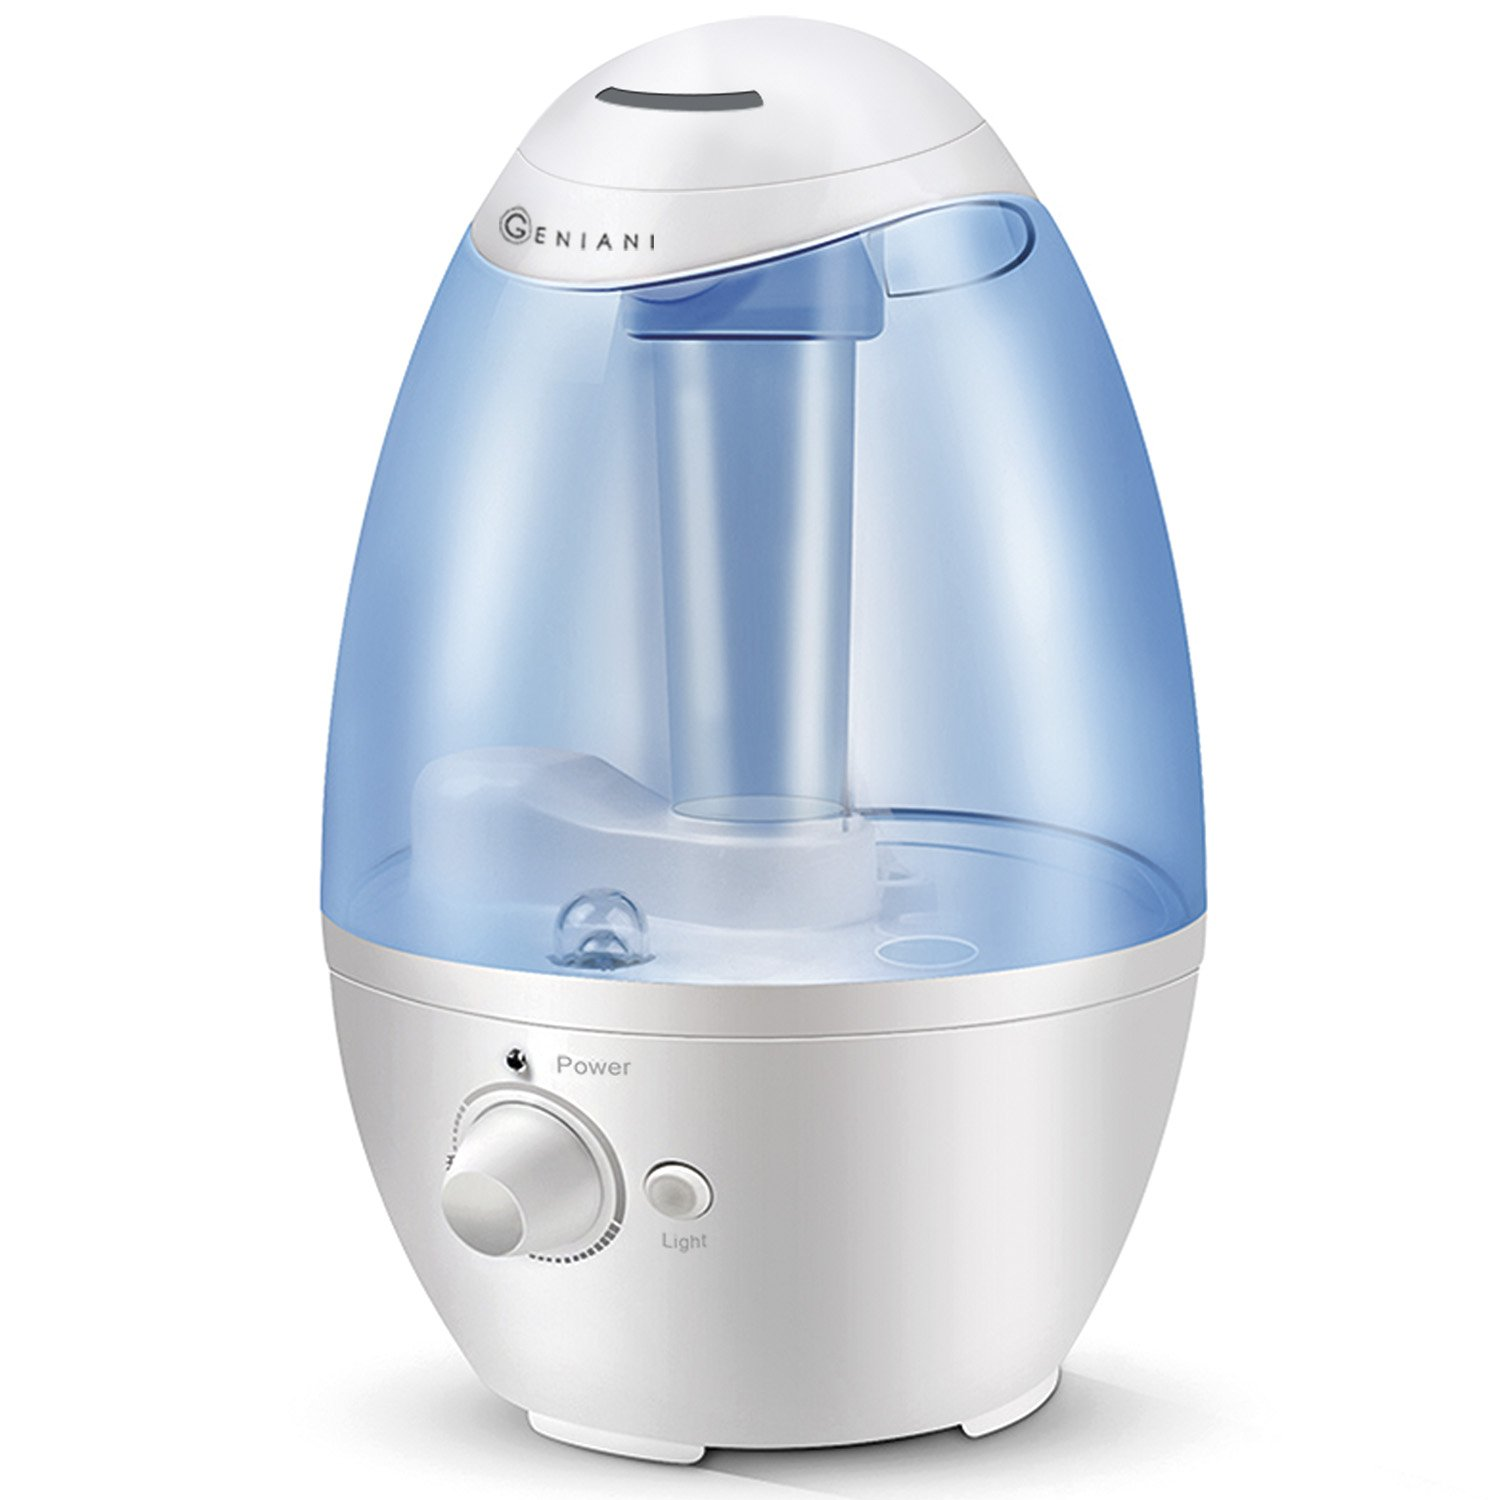 GENIANI Ultrasonic Cool Mist Humidifier Review